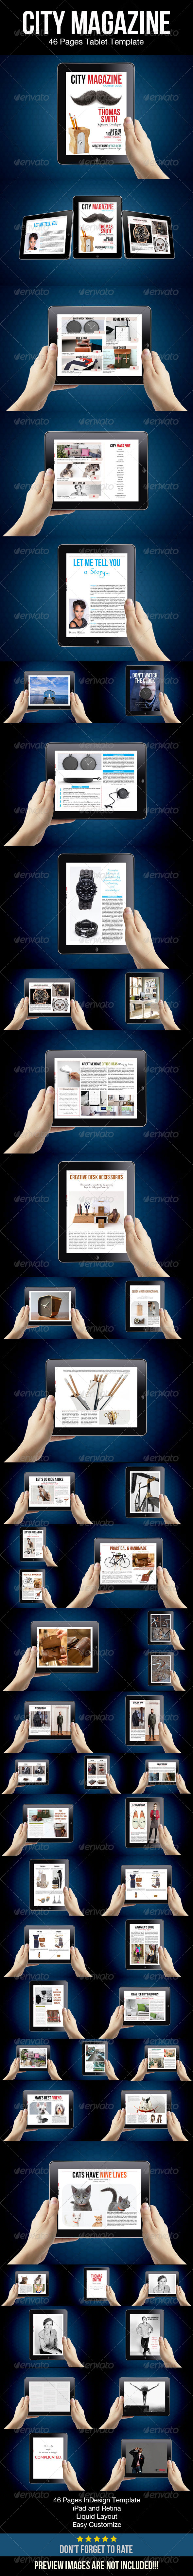 GraphicRiver City Magazine Tablet Template 8774519